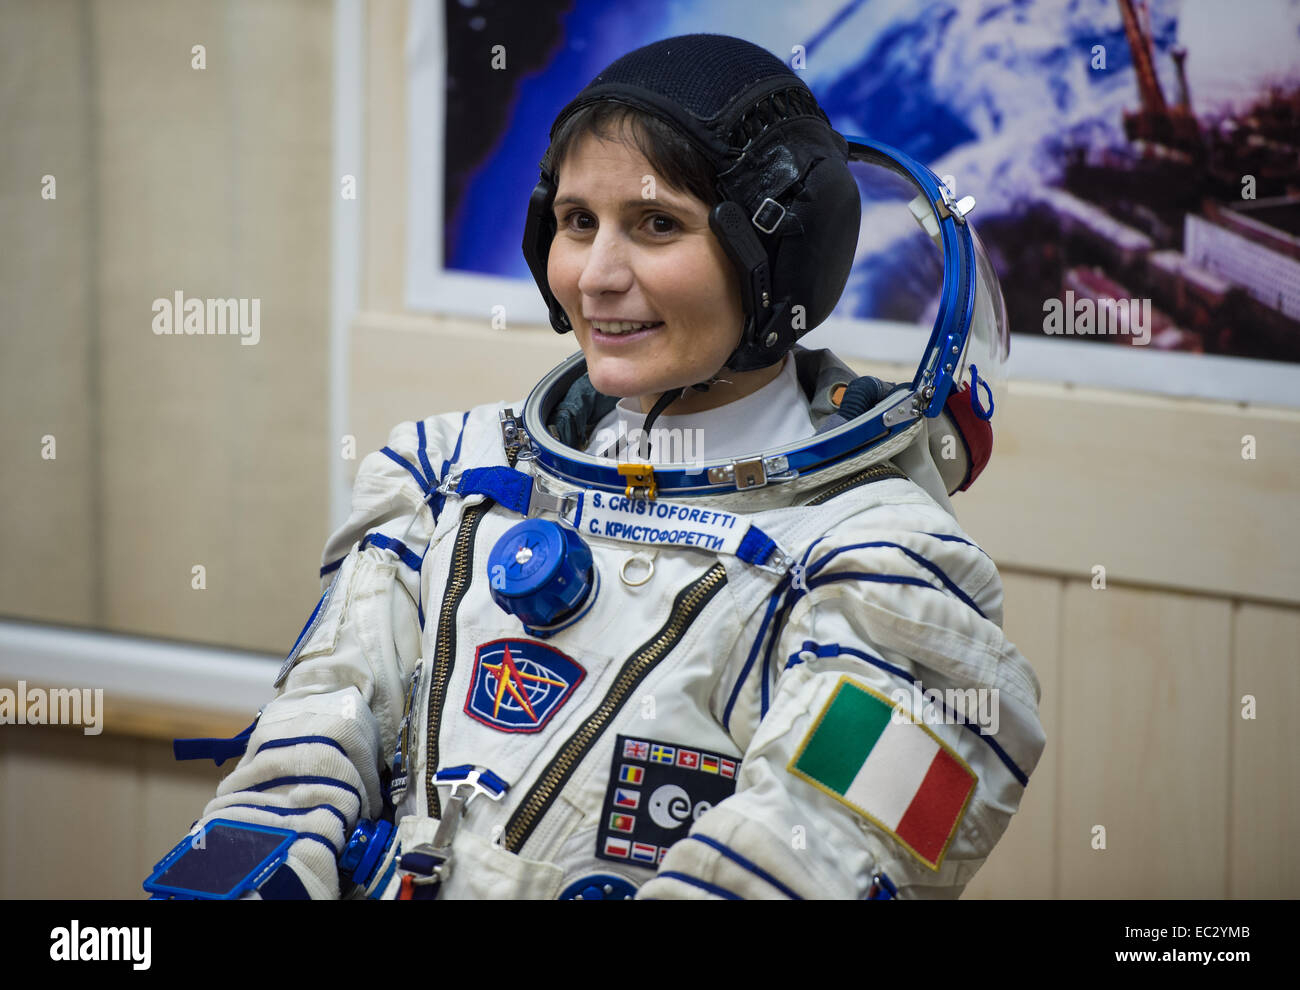 Expedition 42 Flight Engineer Samantha Cristoforetti of the European Space Agency (ESA) waits for a pressure check - Stock Image